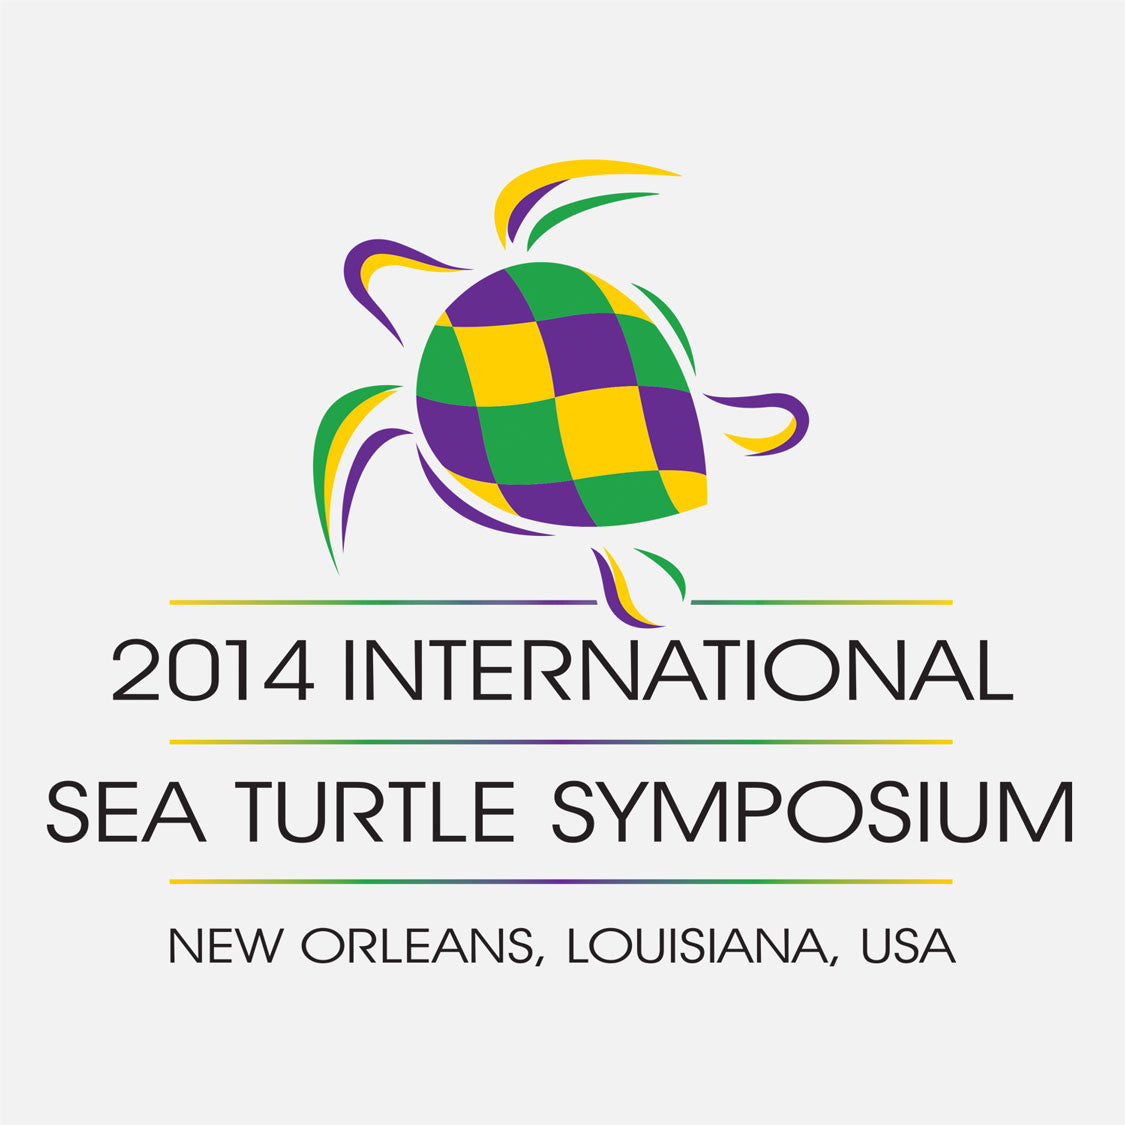 34th annual sea turtle symposium held in New Orleans, Louisianna. The logo depicts a Mardi Gras style sea turtle.